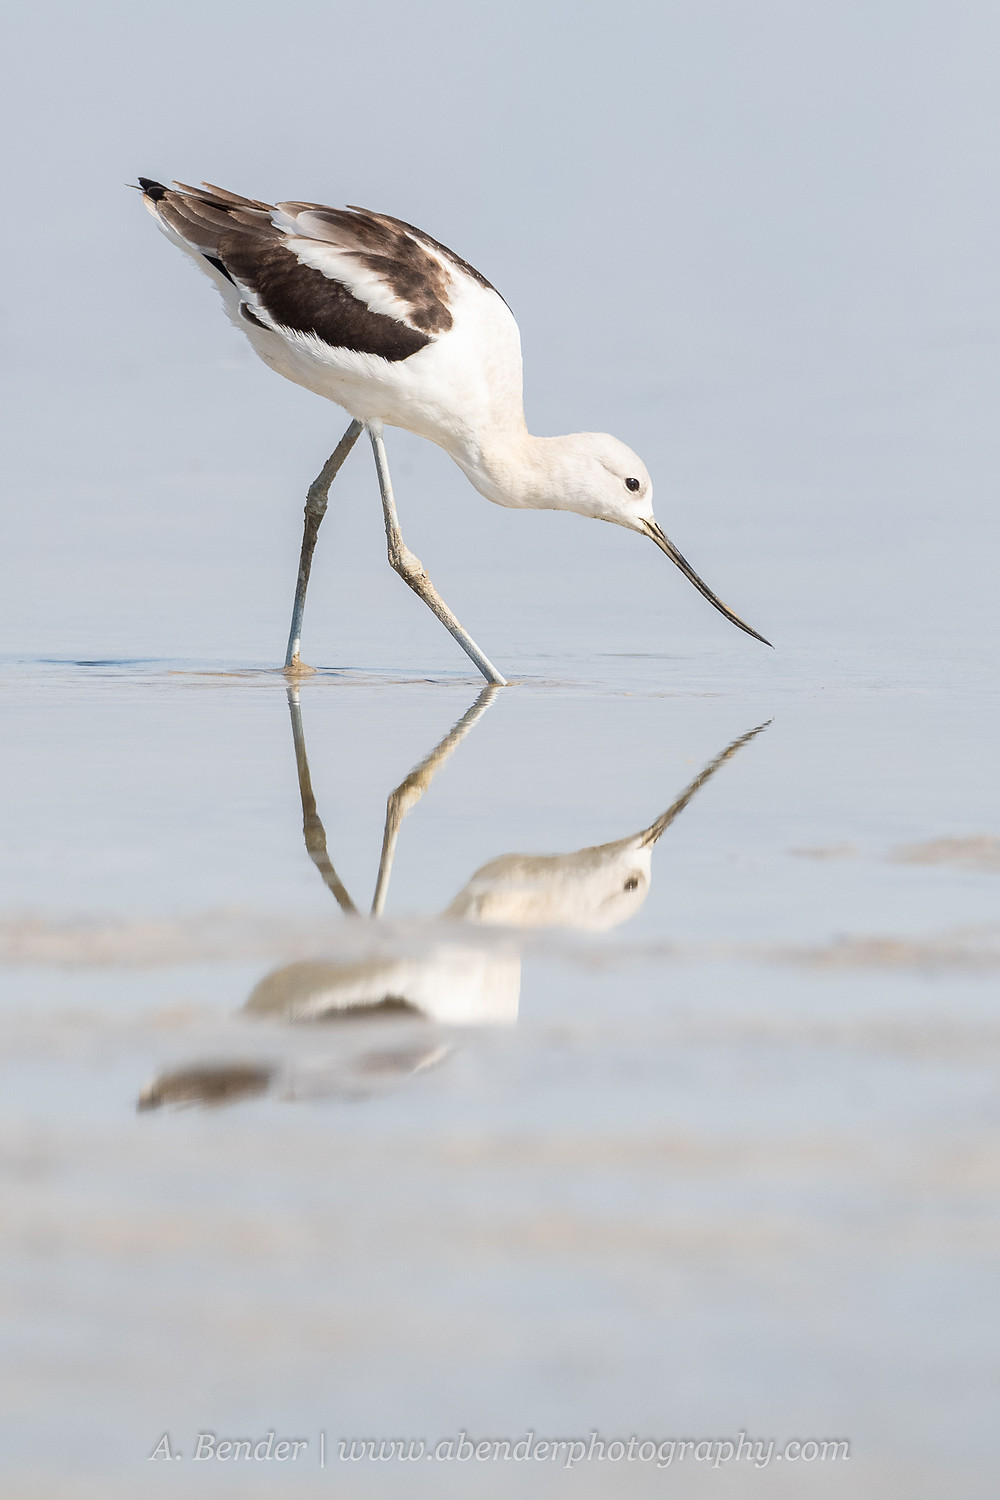 An American avocet searches for food in the drought shallowed waters of the Great Salt Lake Utah with reflection broken due to visible mud | A Bender Photography LLC